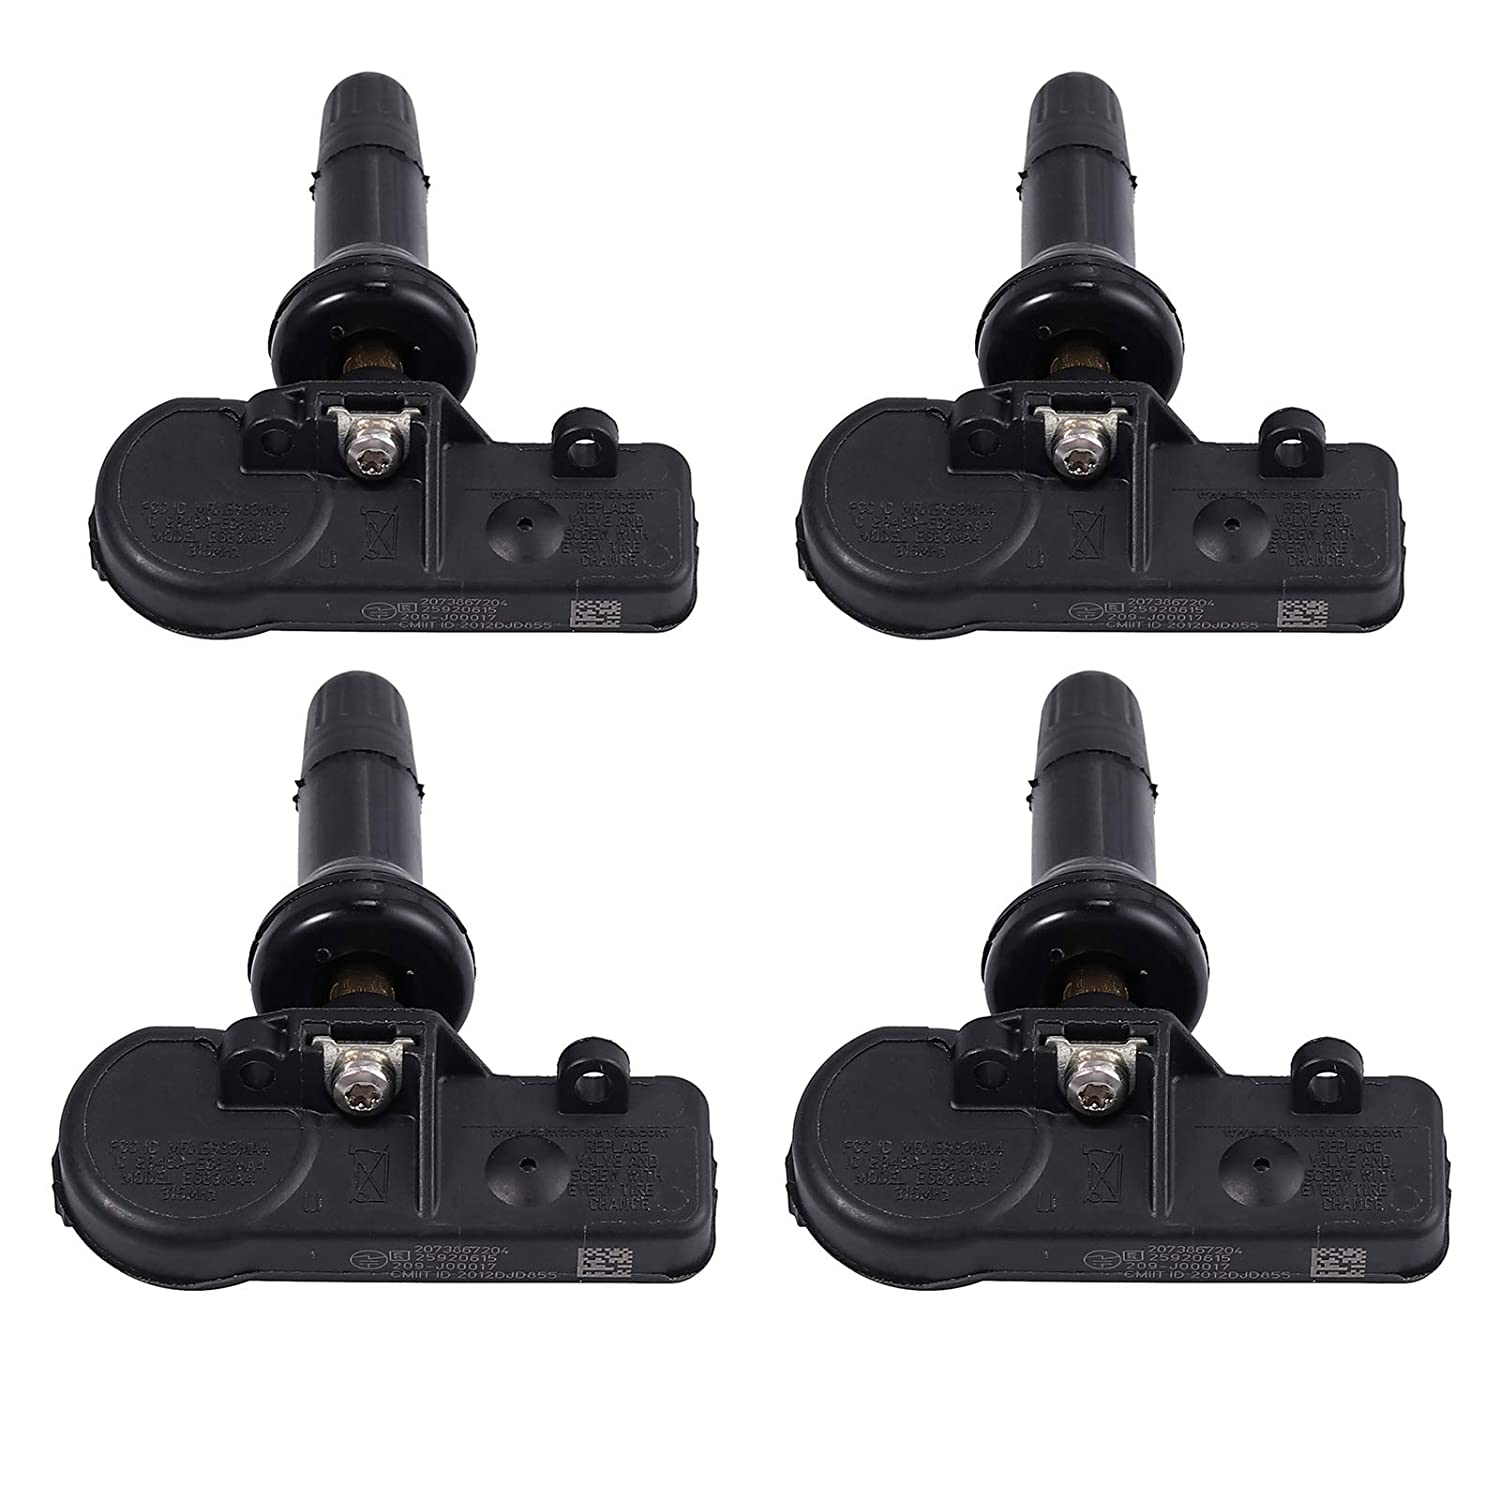 Justech 4pcs Tire Pressure Monitoring Sensor 315MHz Programmable TPMS for Chevrolet Chevy Cadillac Buick GMC Tire Internal Sensor Replace 25920615 13581558 13586335 15123145 15254101 15922396